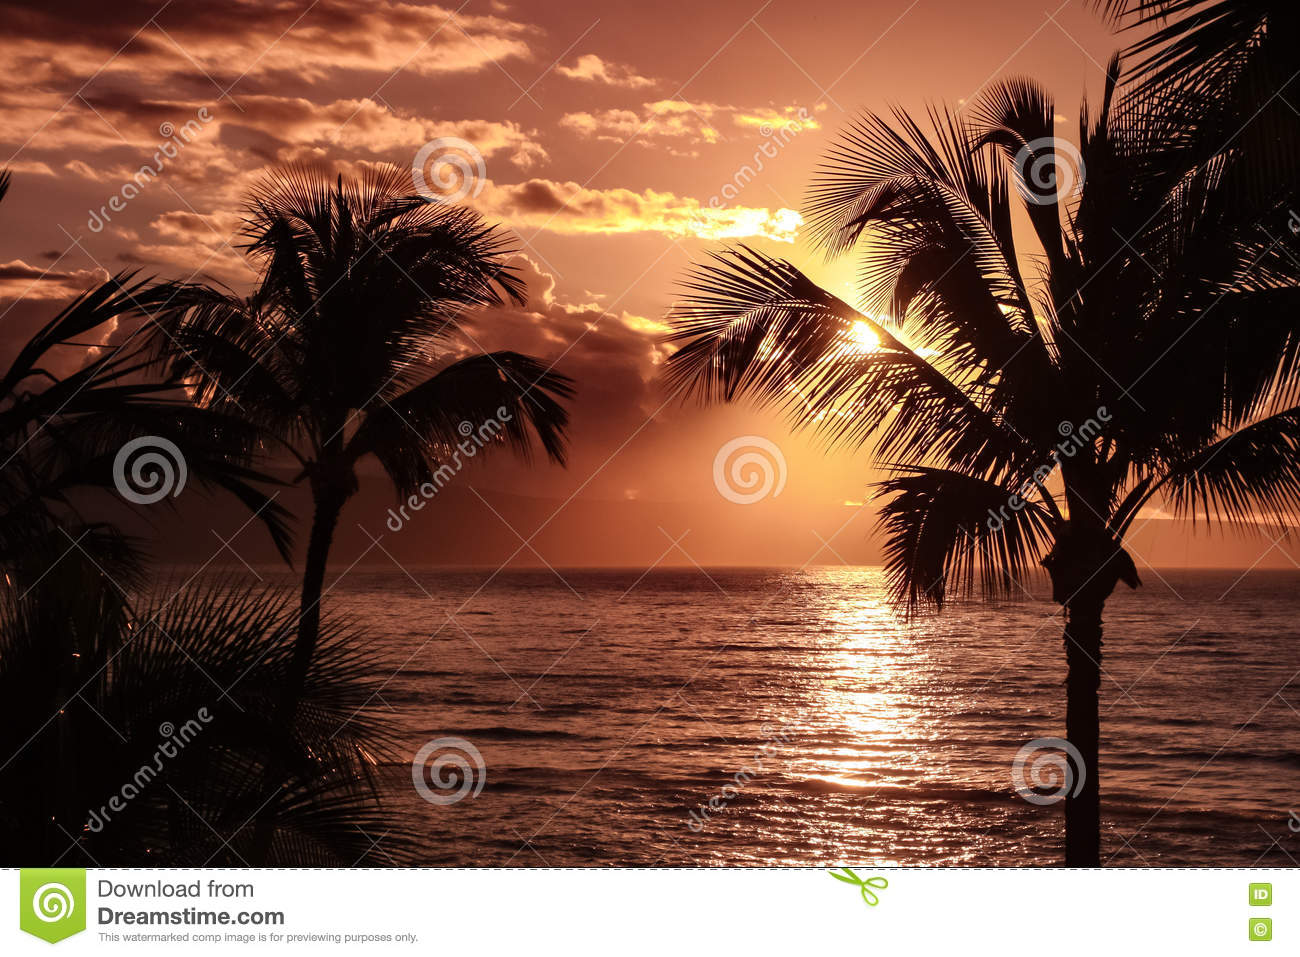 Palm tree silhouette against yellow sunset sky - hawaii